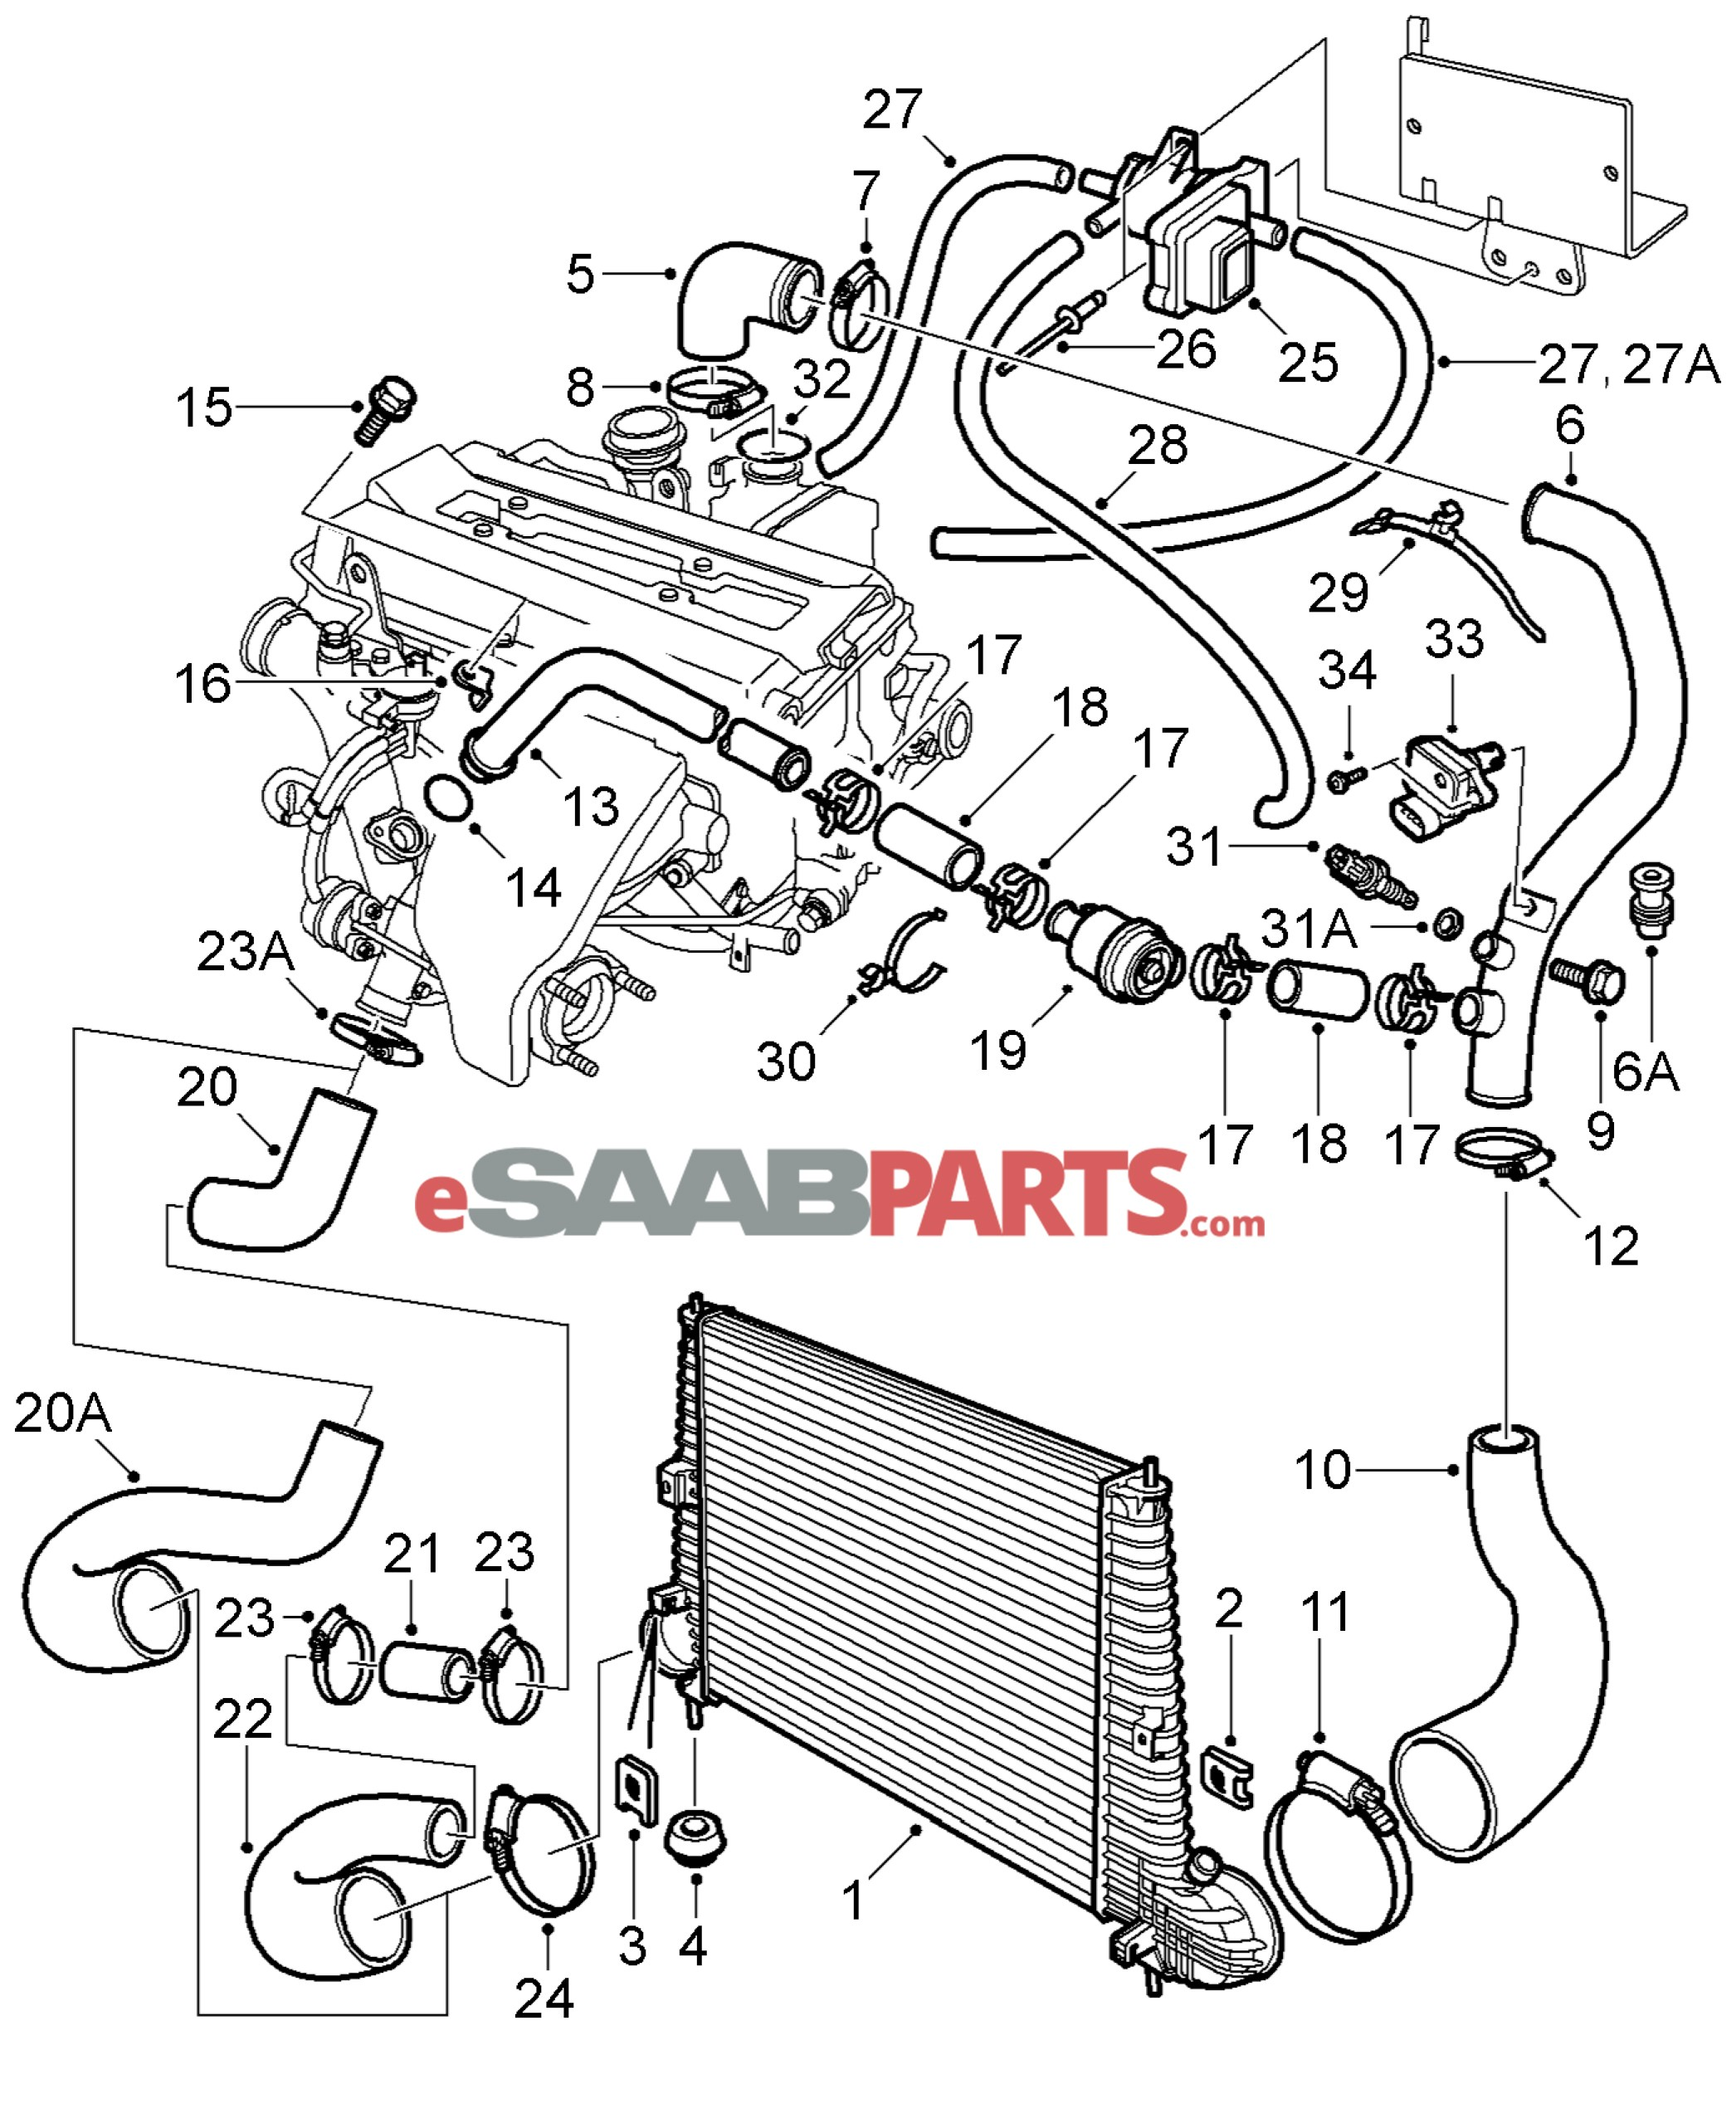 2000 ford ranger engine diagram start stop station wiring xlt fuse box database fuel pump location cadillac escalade 2 9